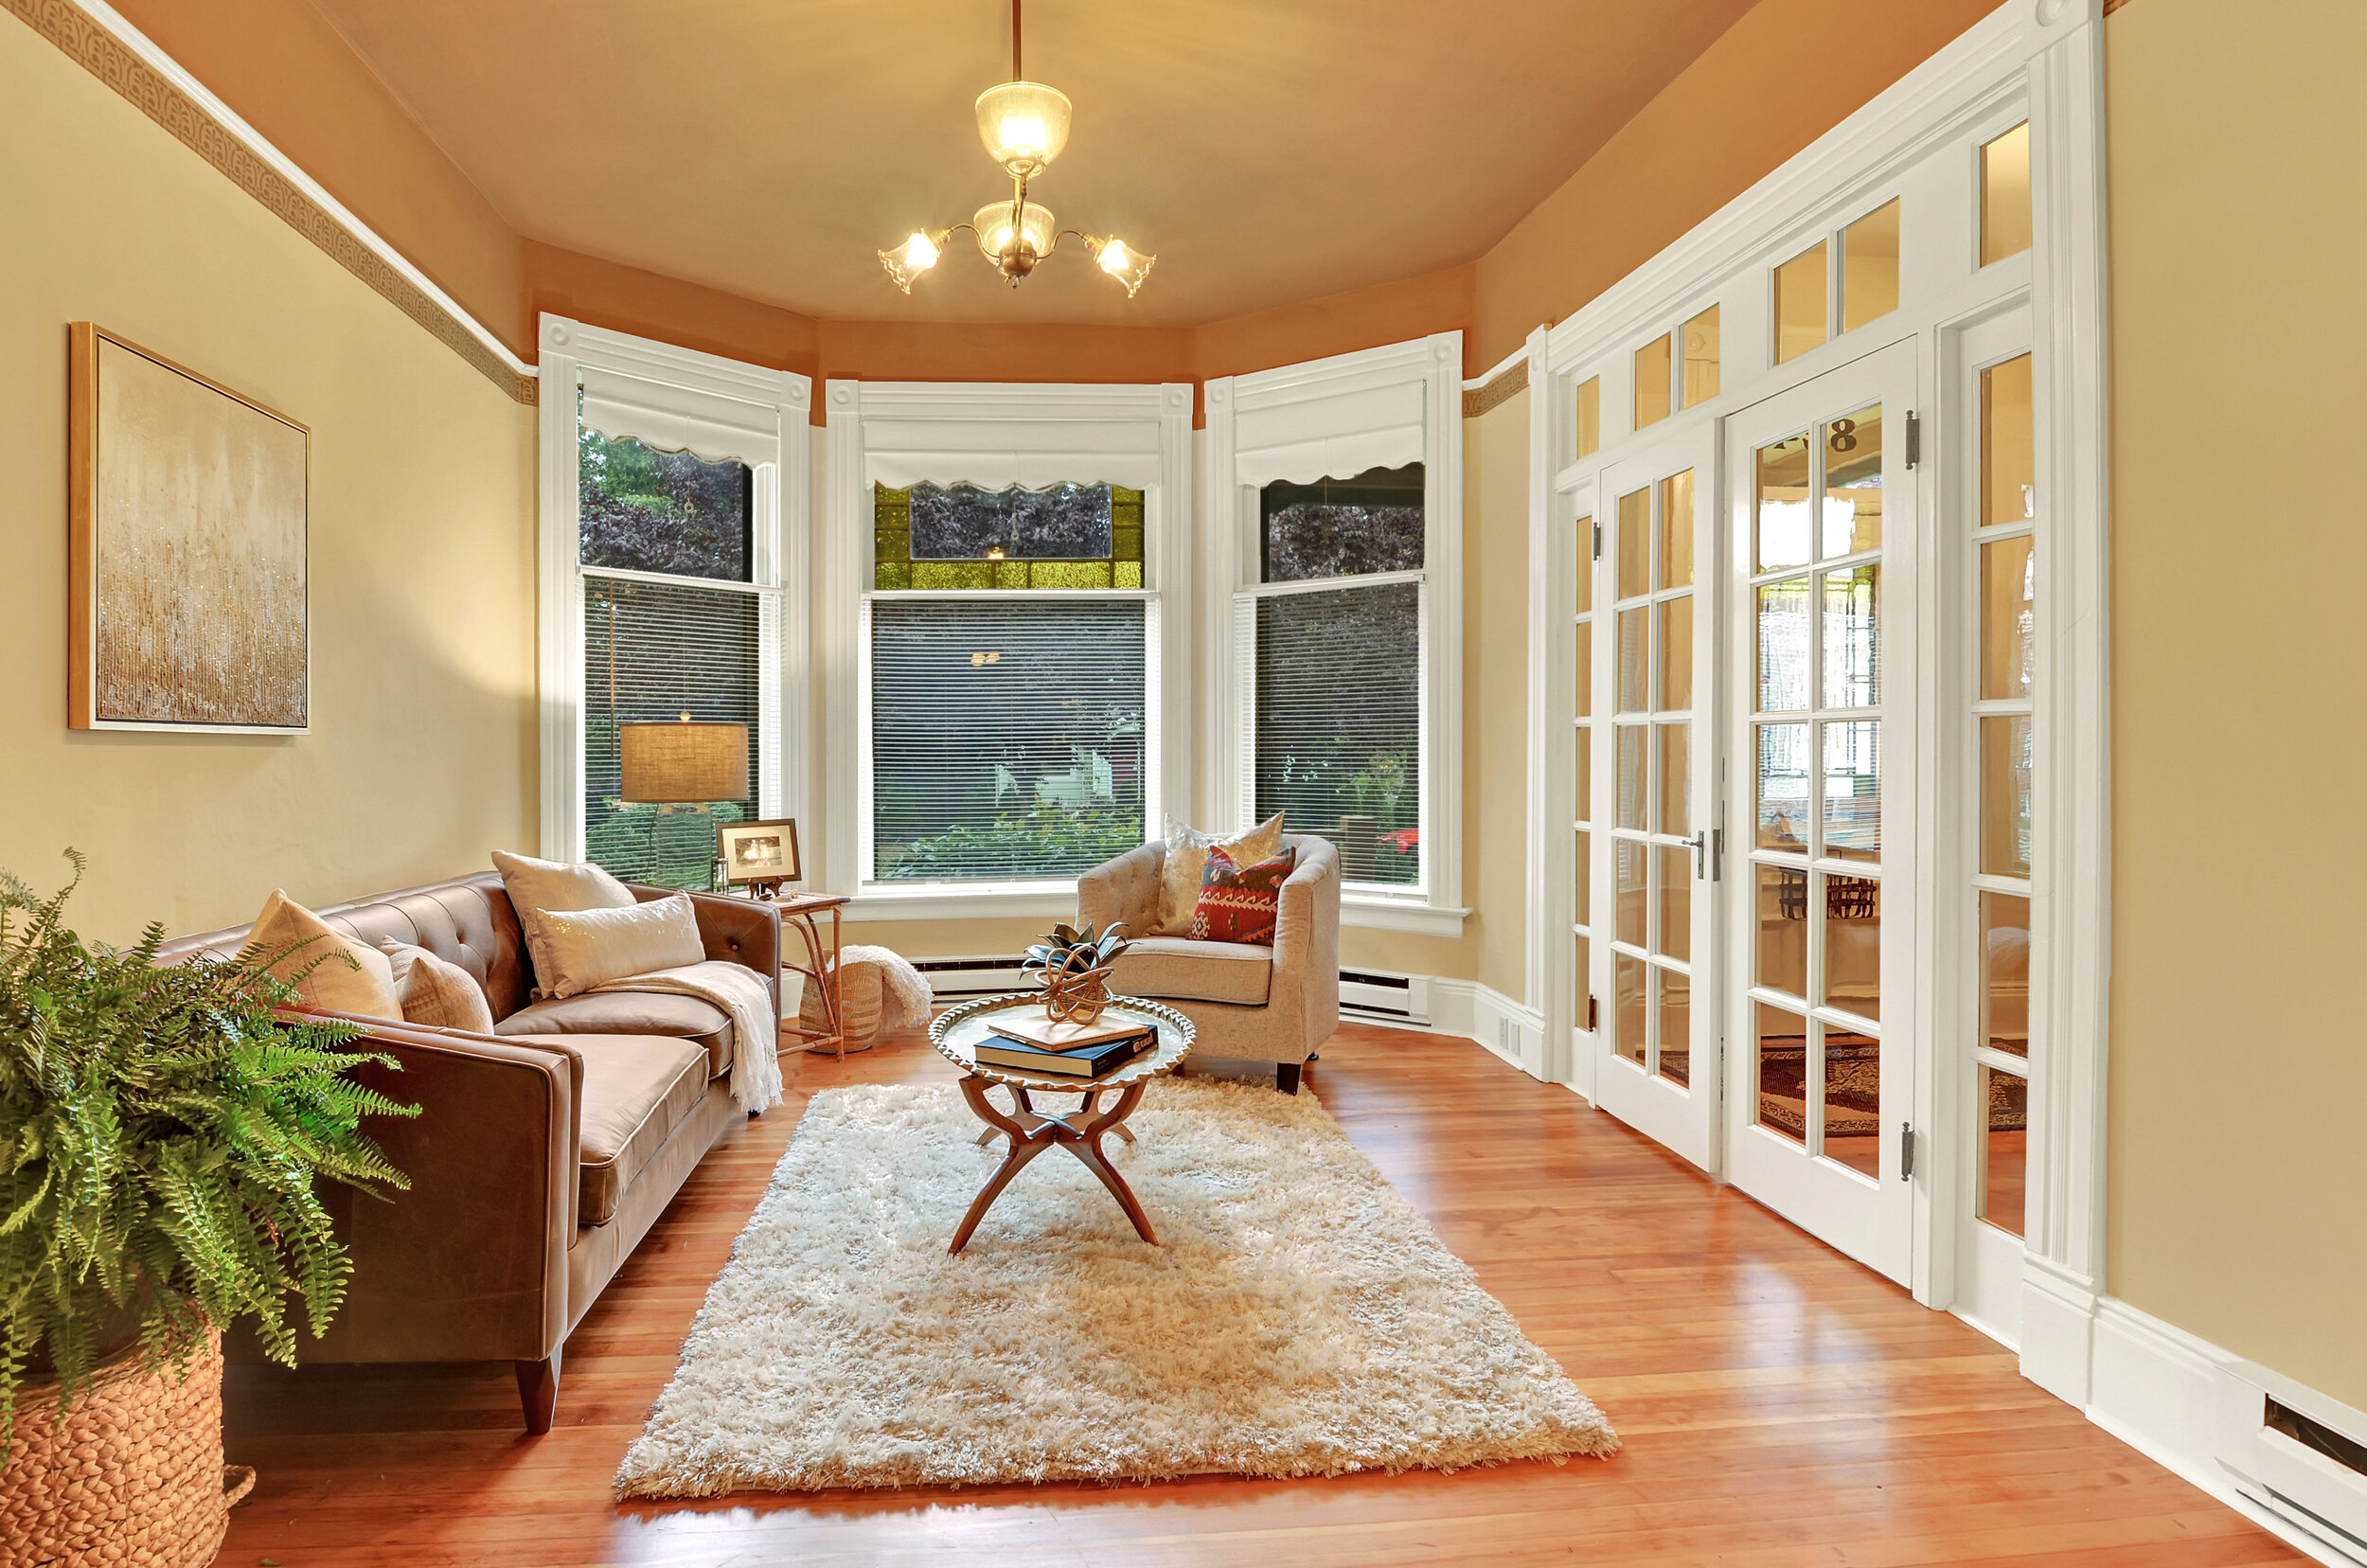 Stained glass panels enrich the bay windows. All windows in the home are protected by storm windows, which helps with heat efficiency.